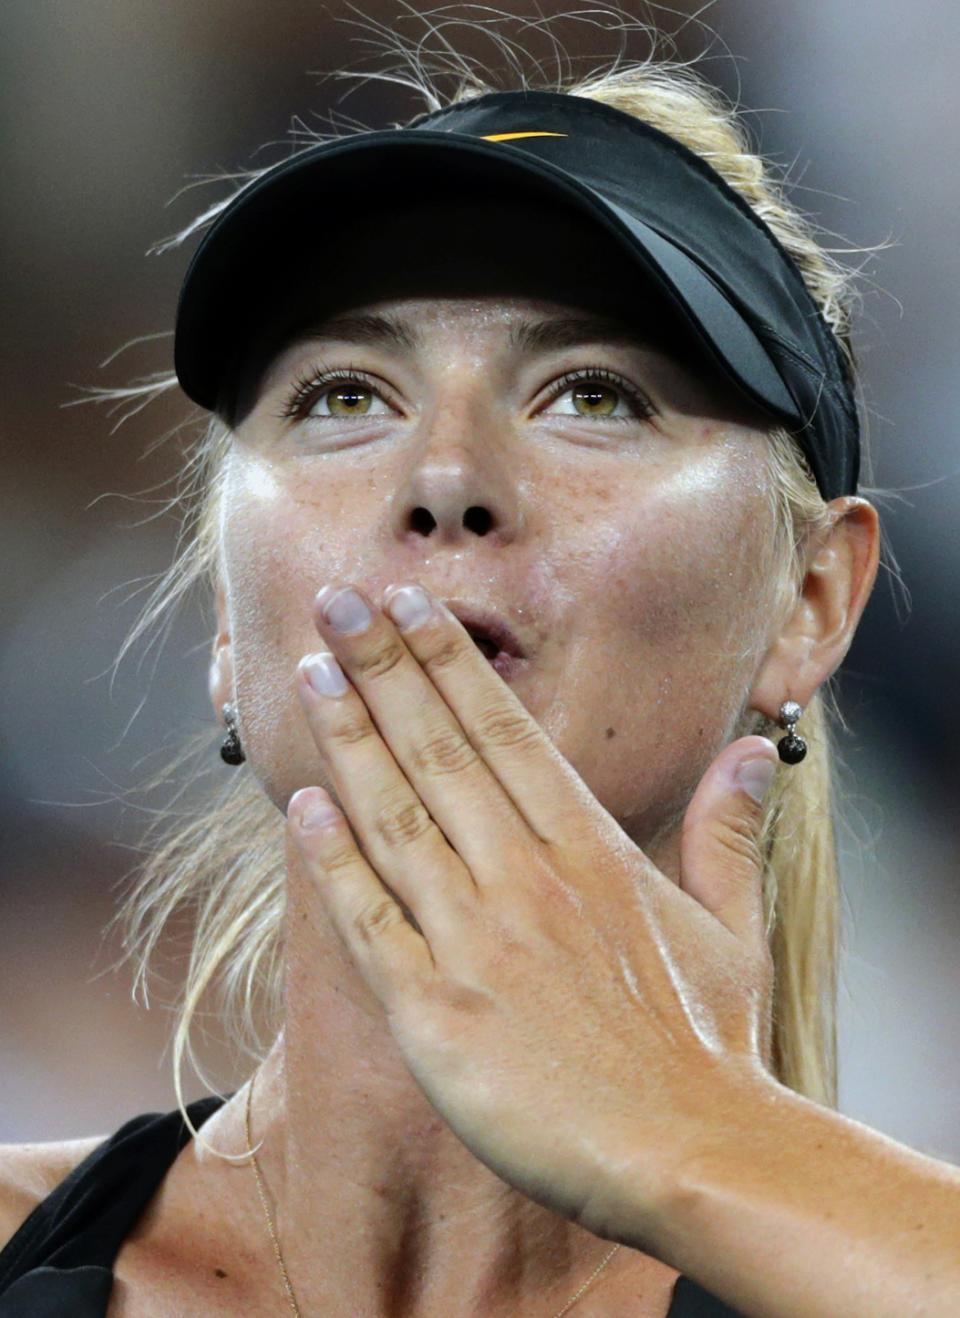 Maria Sharapova, of Russia, blows a kiss to the crowd after defeating Lourdes Dominguez Lino, of Spain, 6-0, 6-1 in the second round of play at the U.S. Open tennis tournament, Wednesday, Aug. 29, 2012, in New York. (AP Photo/Charles Krupa)